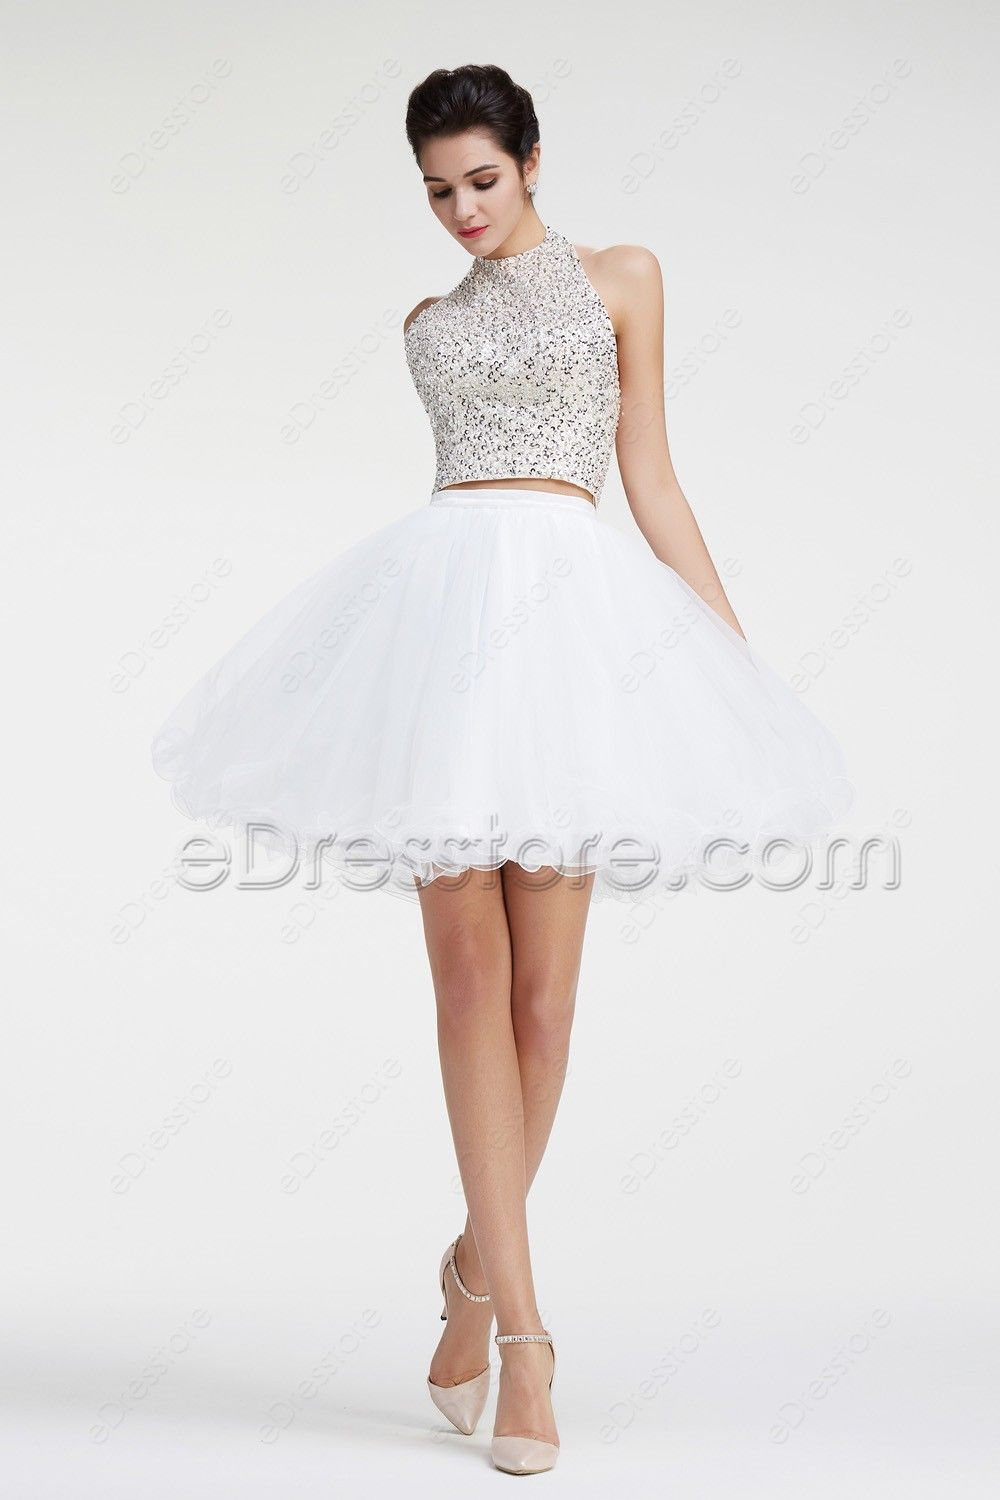 Halter Crystal Sparkly Two Piece White Short Prom Dresses